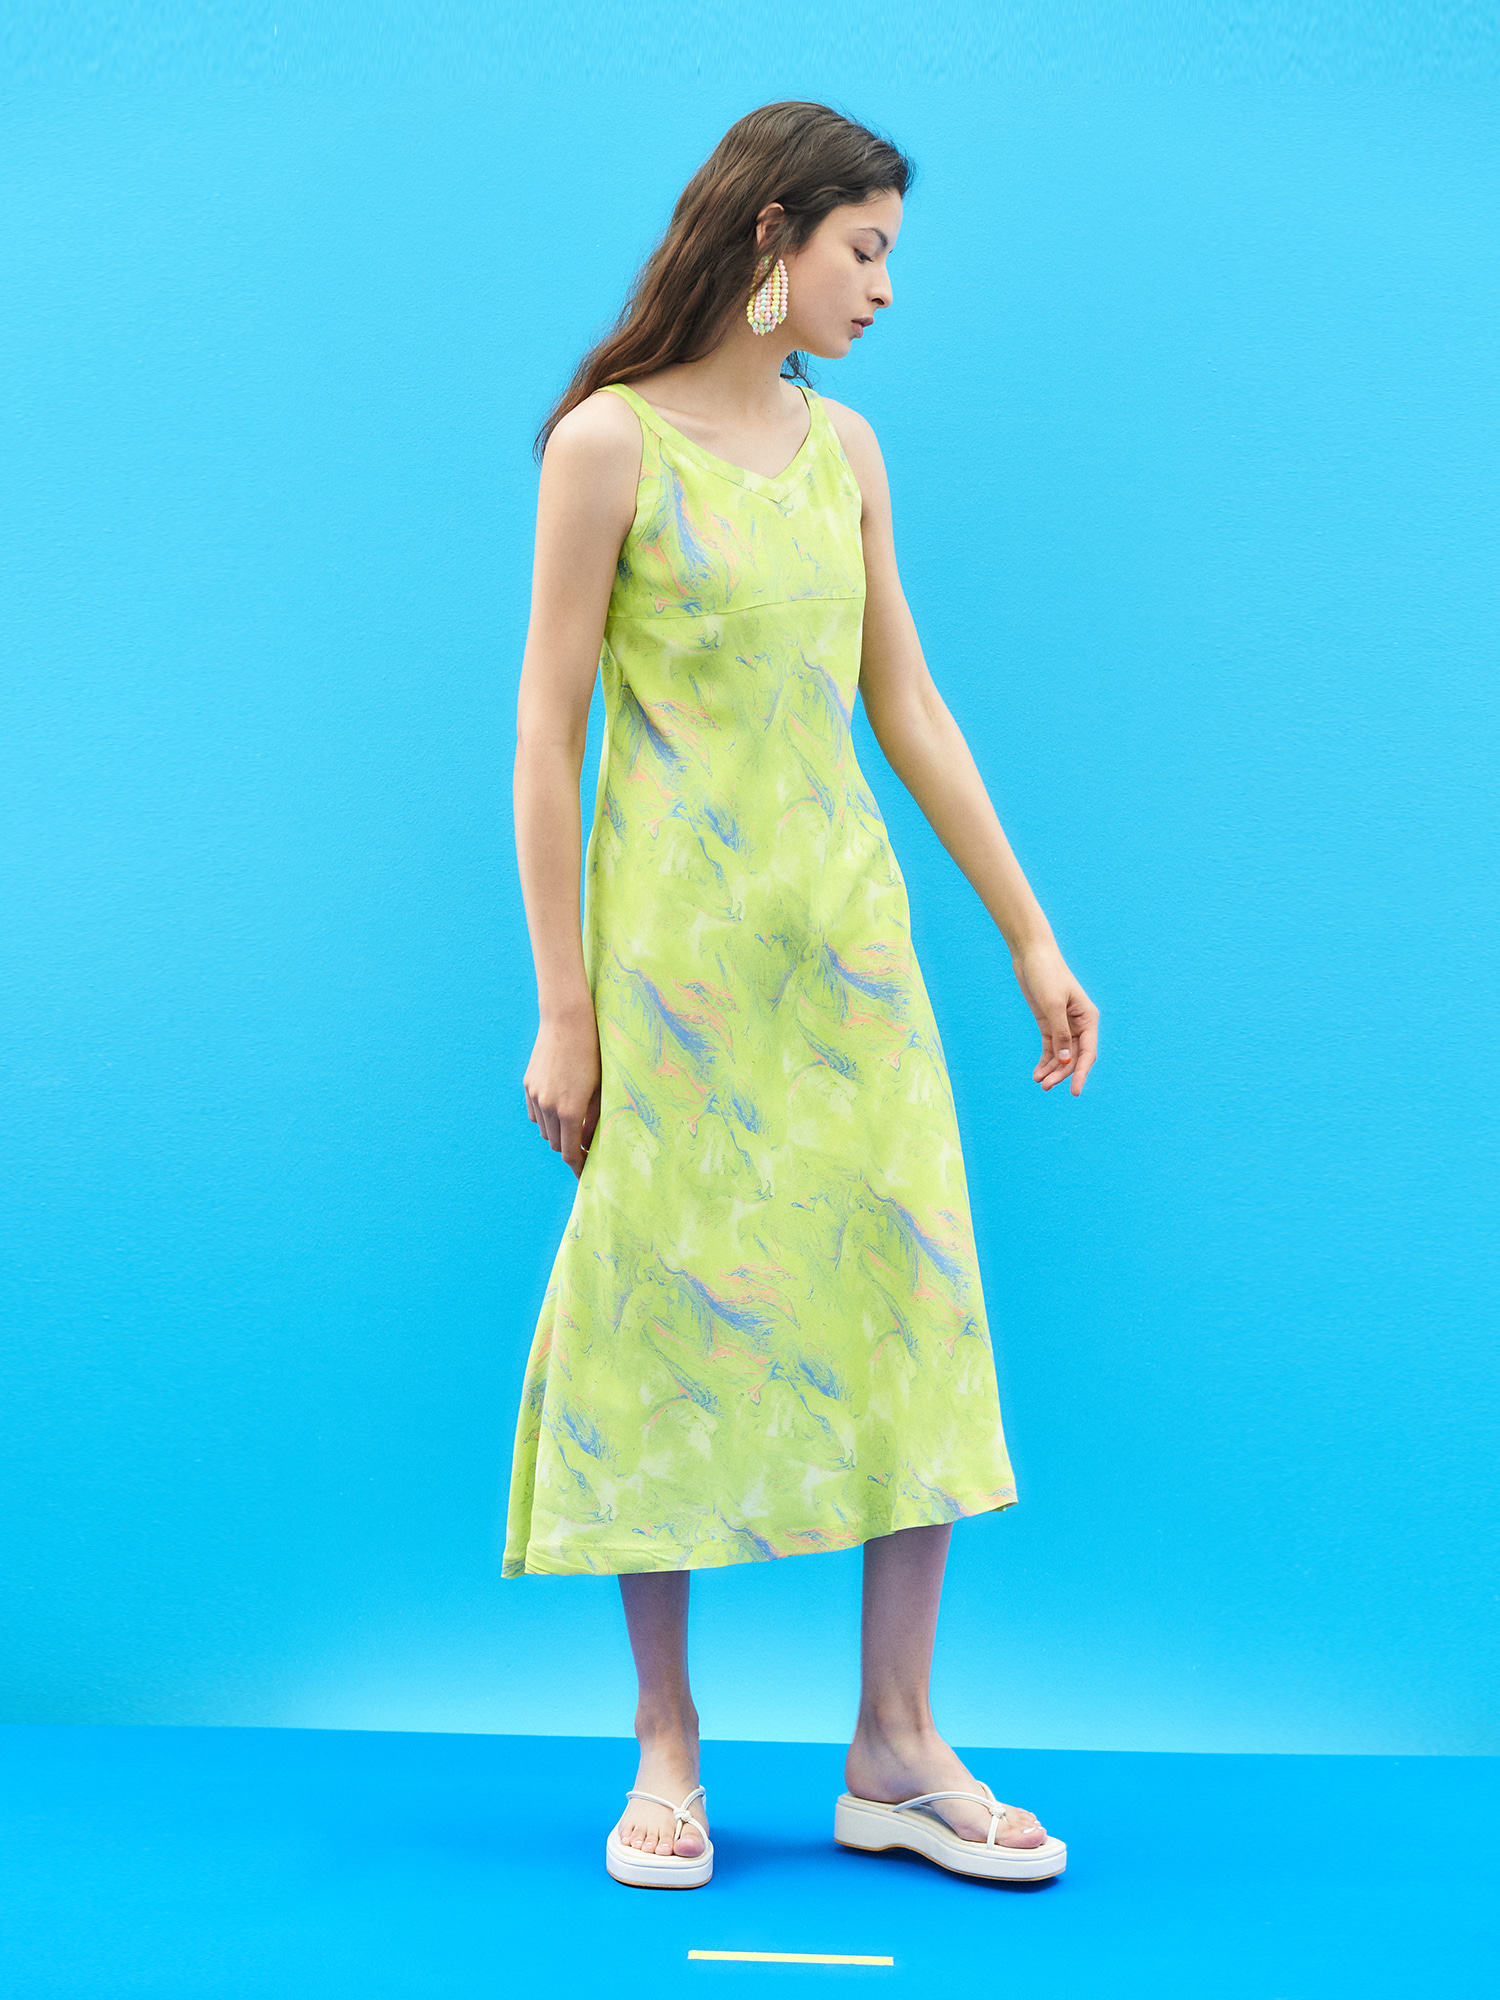 [SUMMER BIG SALE]Marbling Sleeveless Dress in Lime